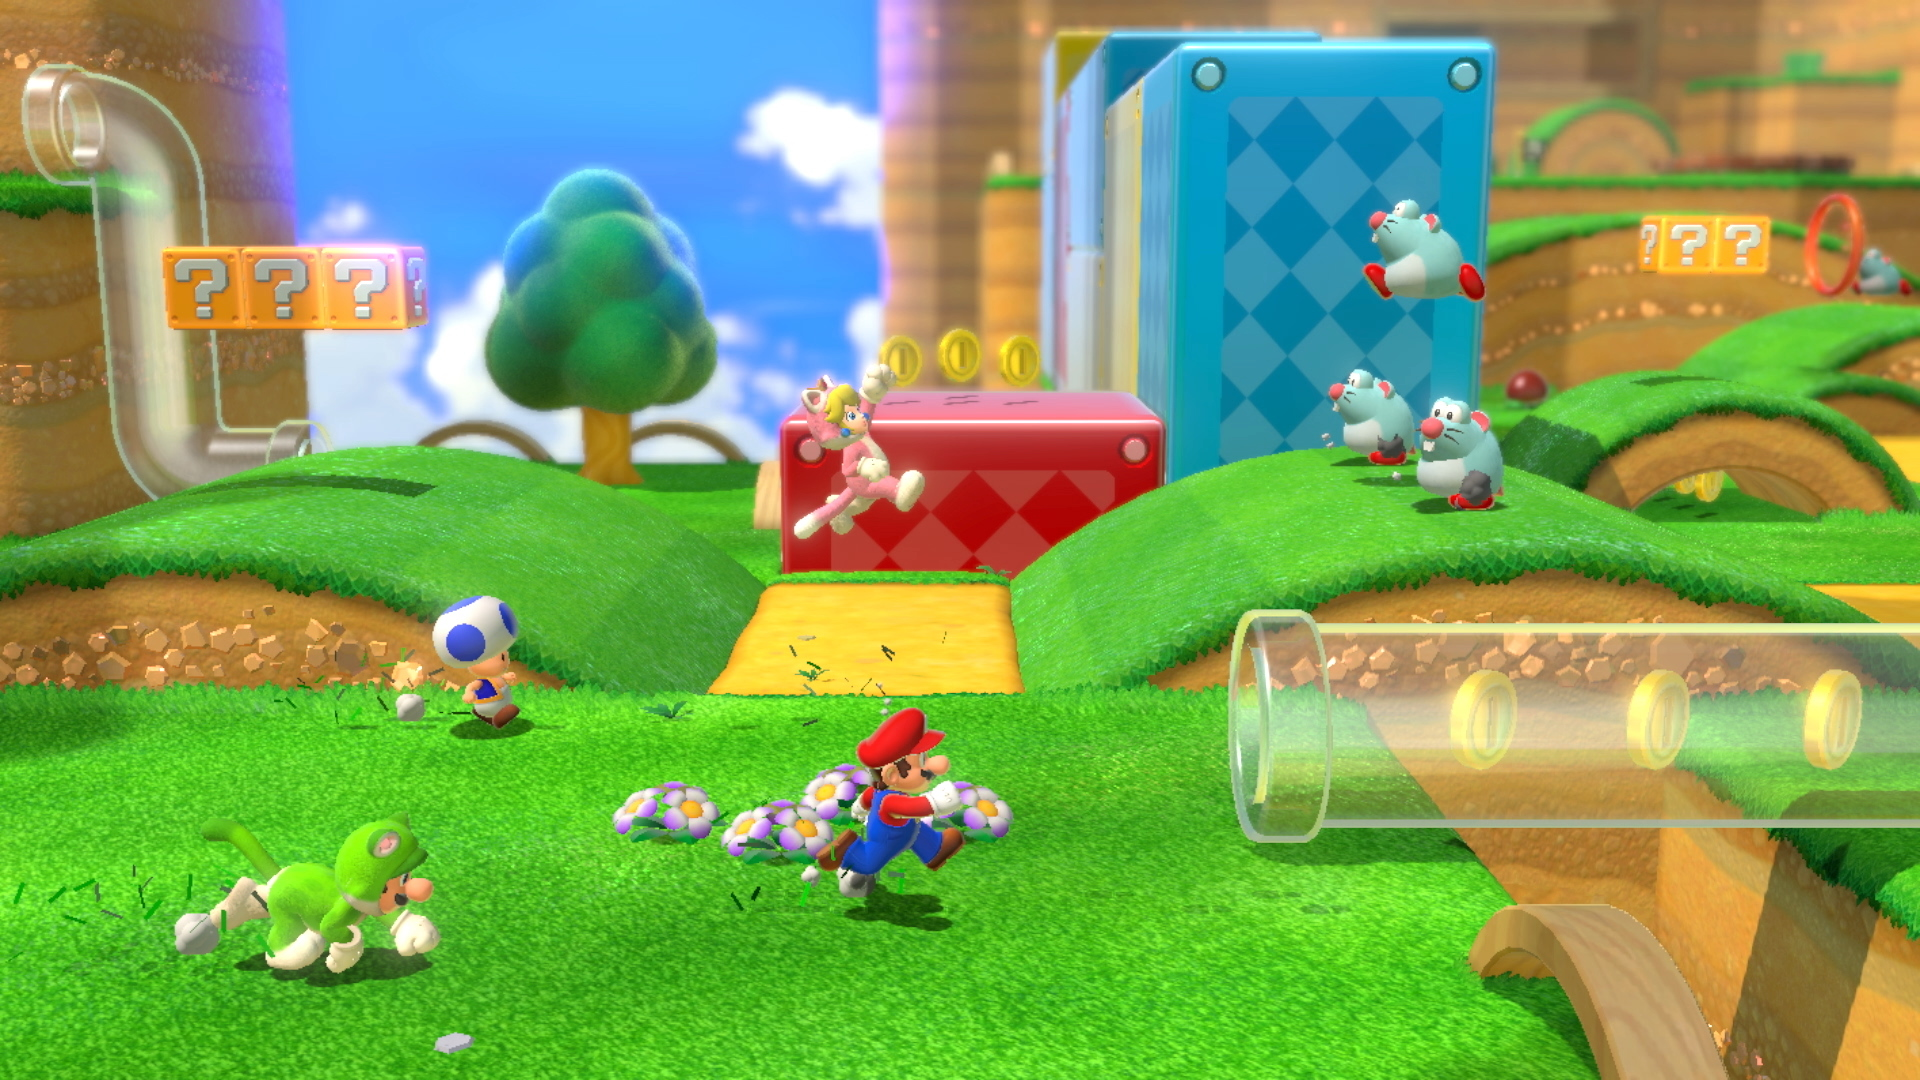 Multiplayer in Super Mario 3D World still feels superfluous